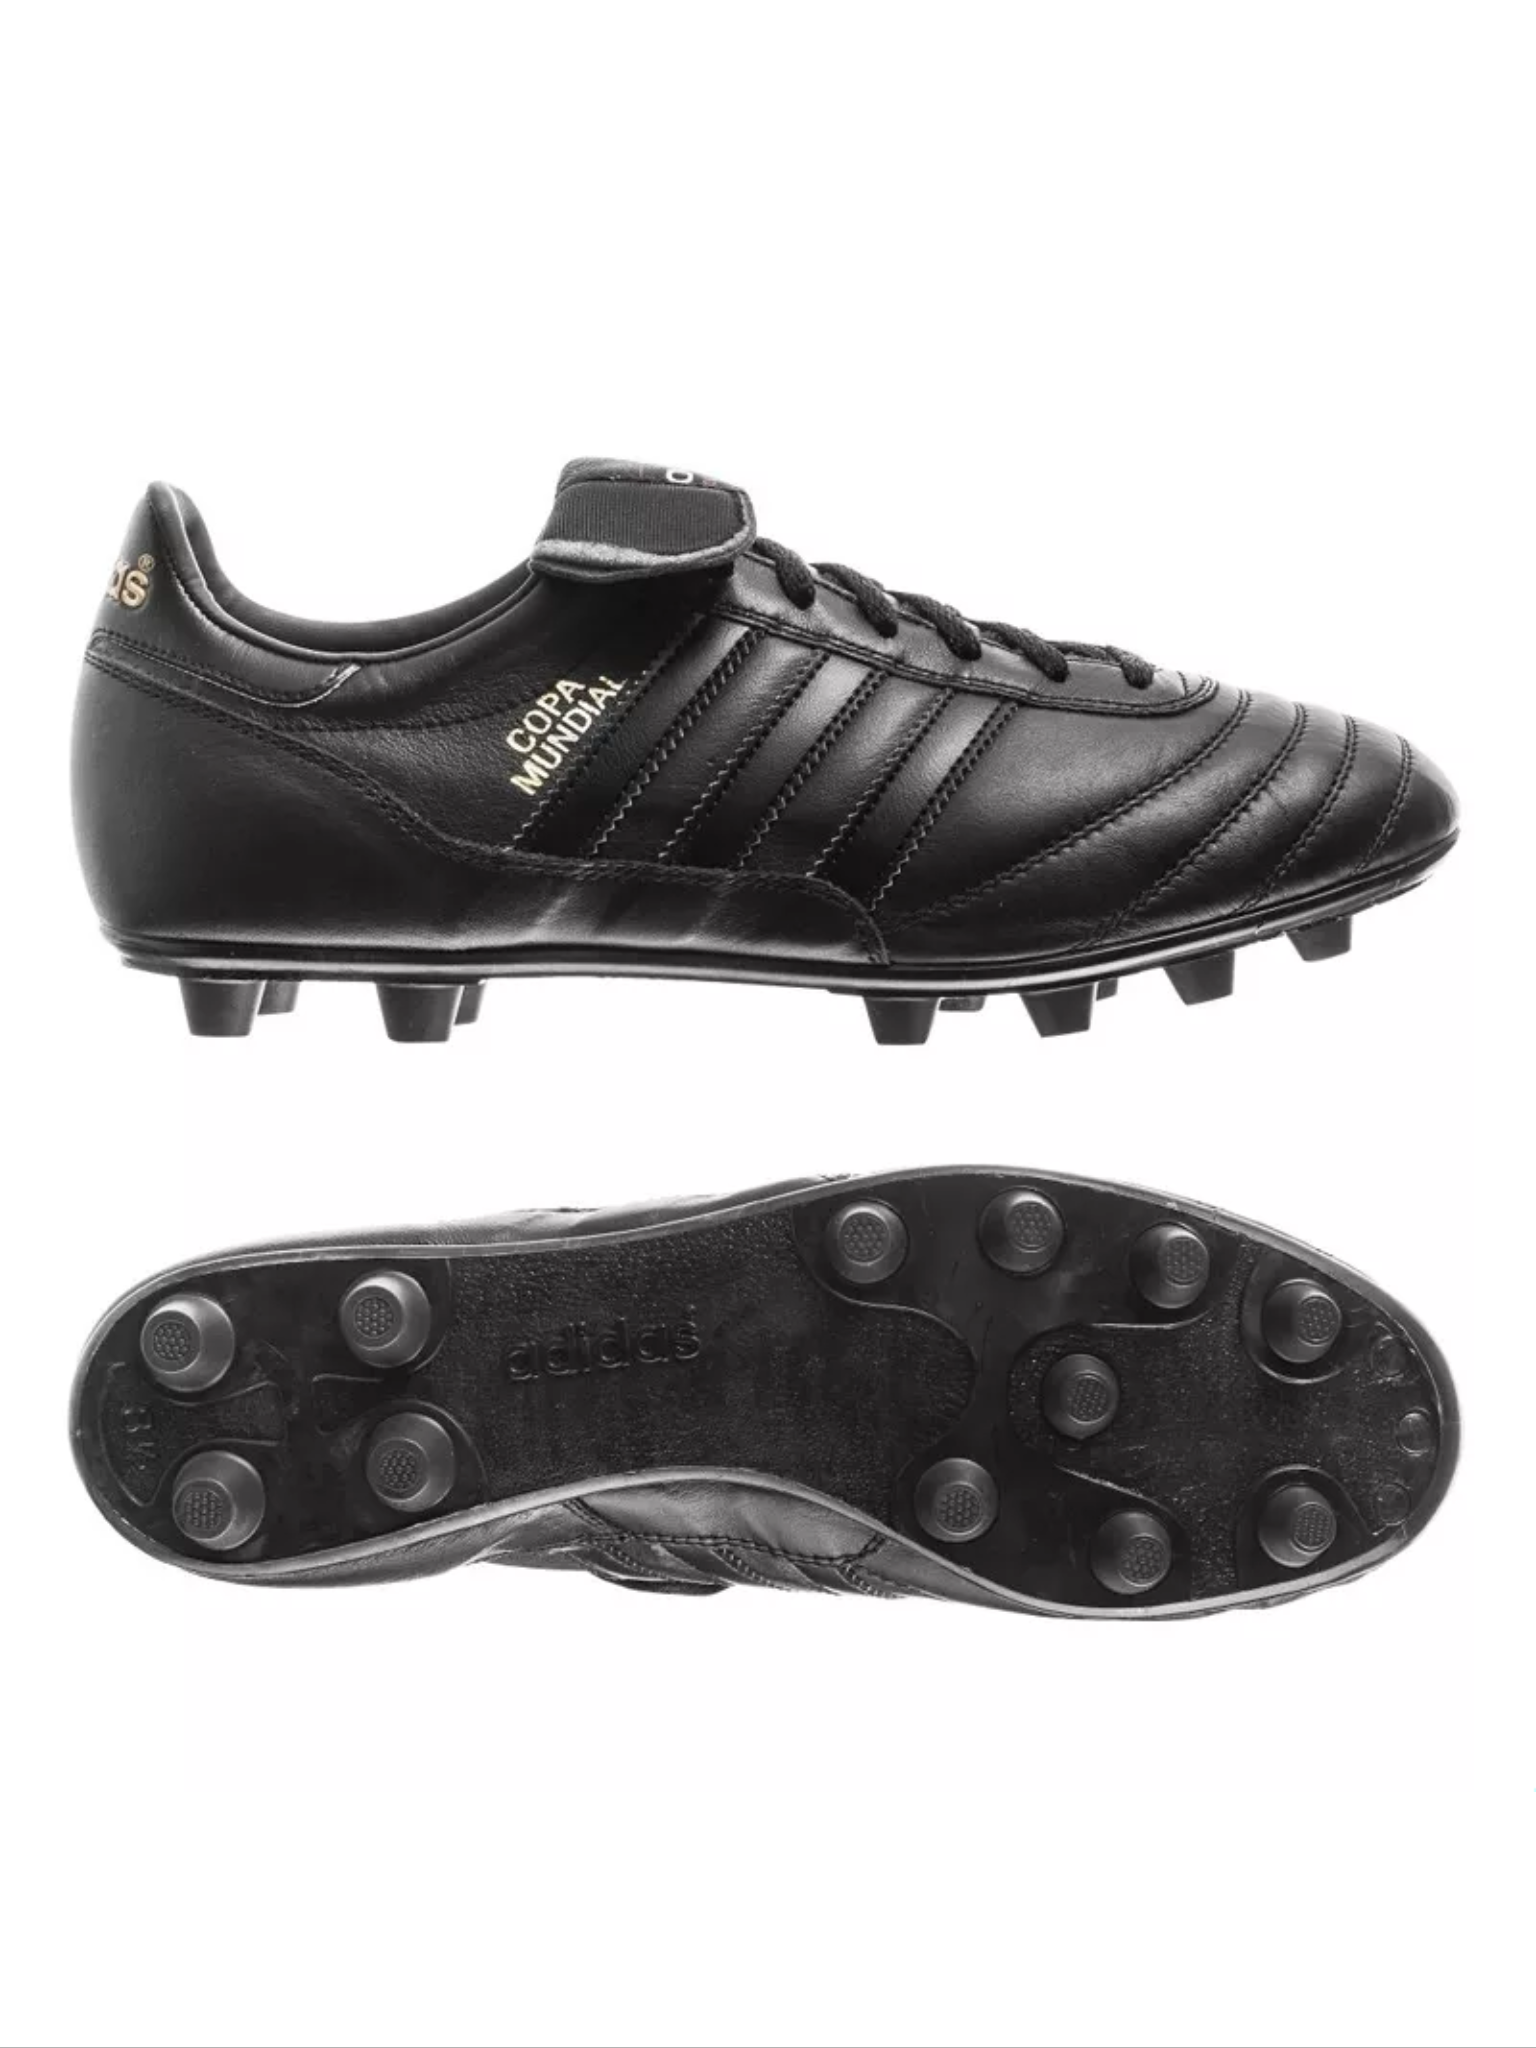 27081bf7d Adidas Copa Mundial in black on black. Wear like iron and feel like  butter... Adidas Copa Mundial Blackout Edition